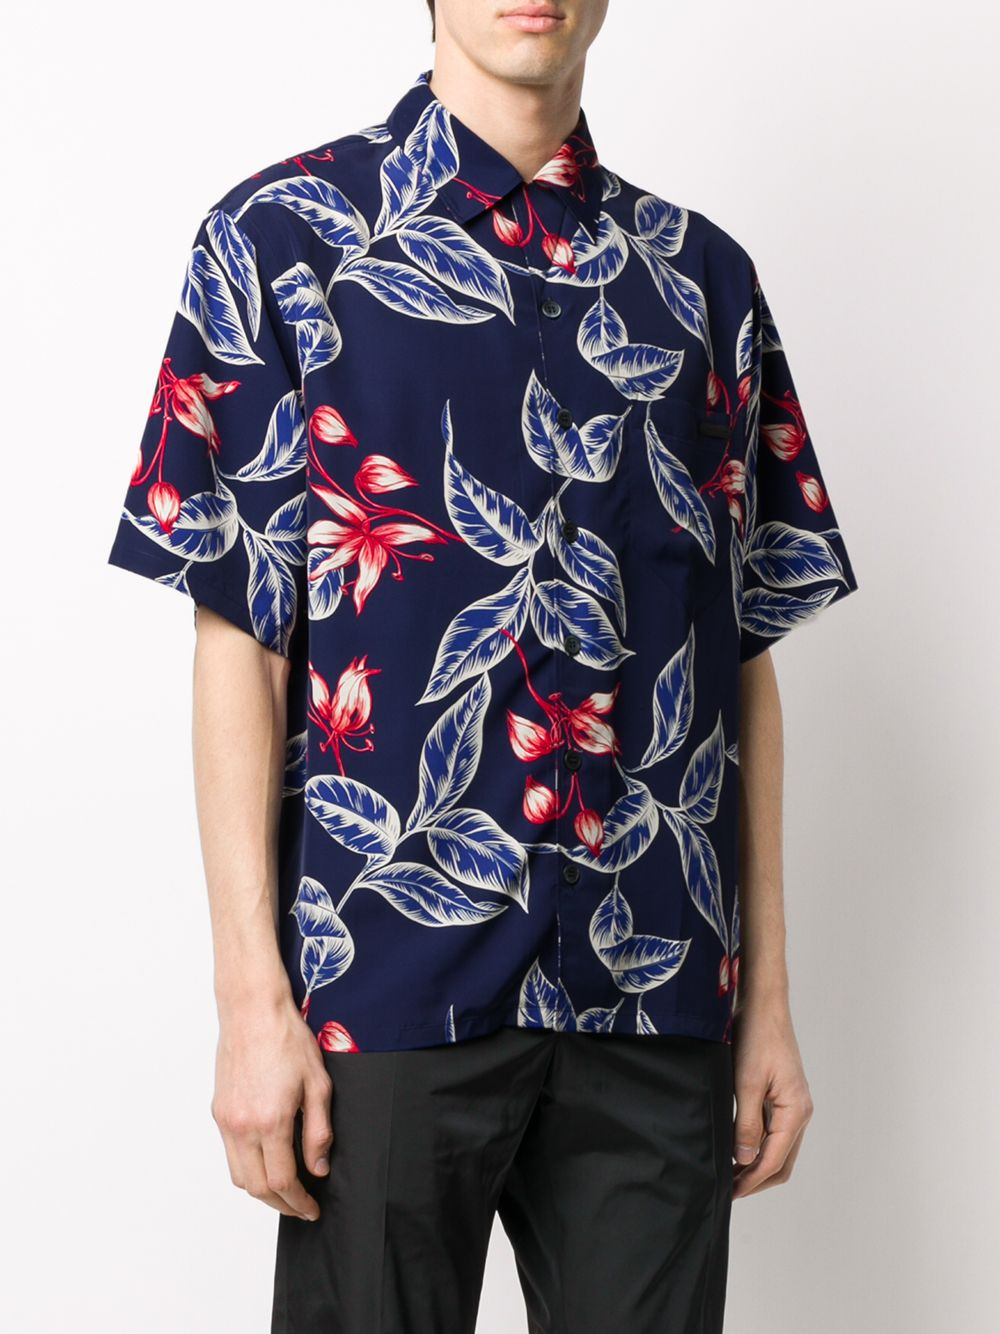 Picture of Prada | Bowling Shirt Ponge`Lilium